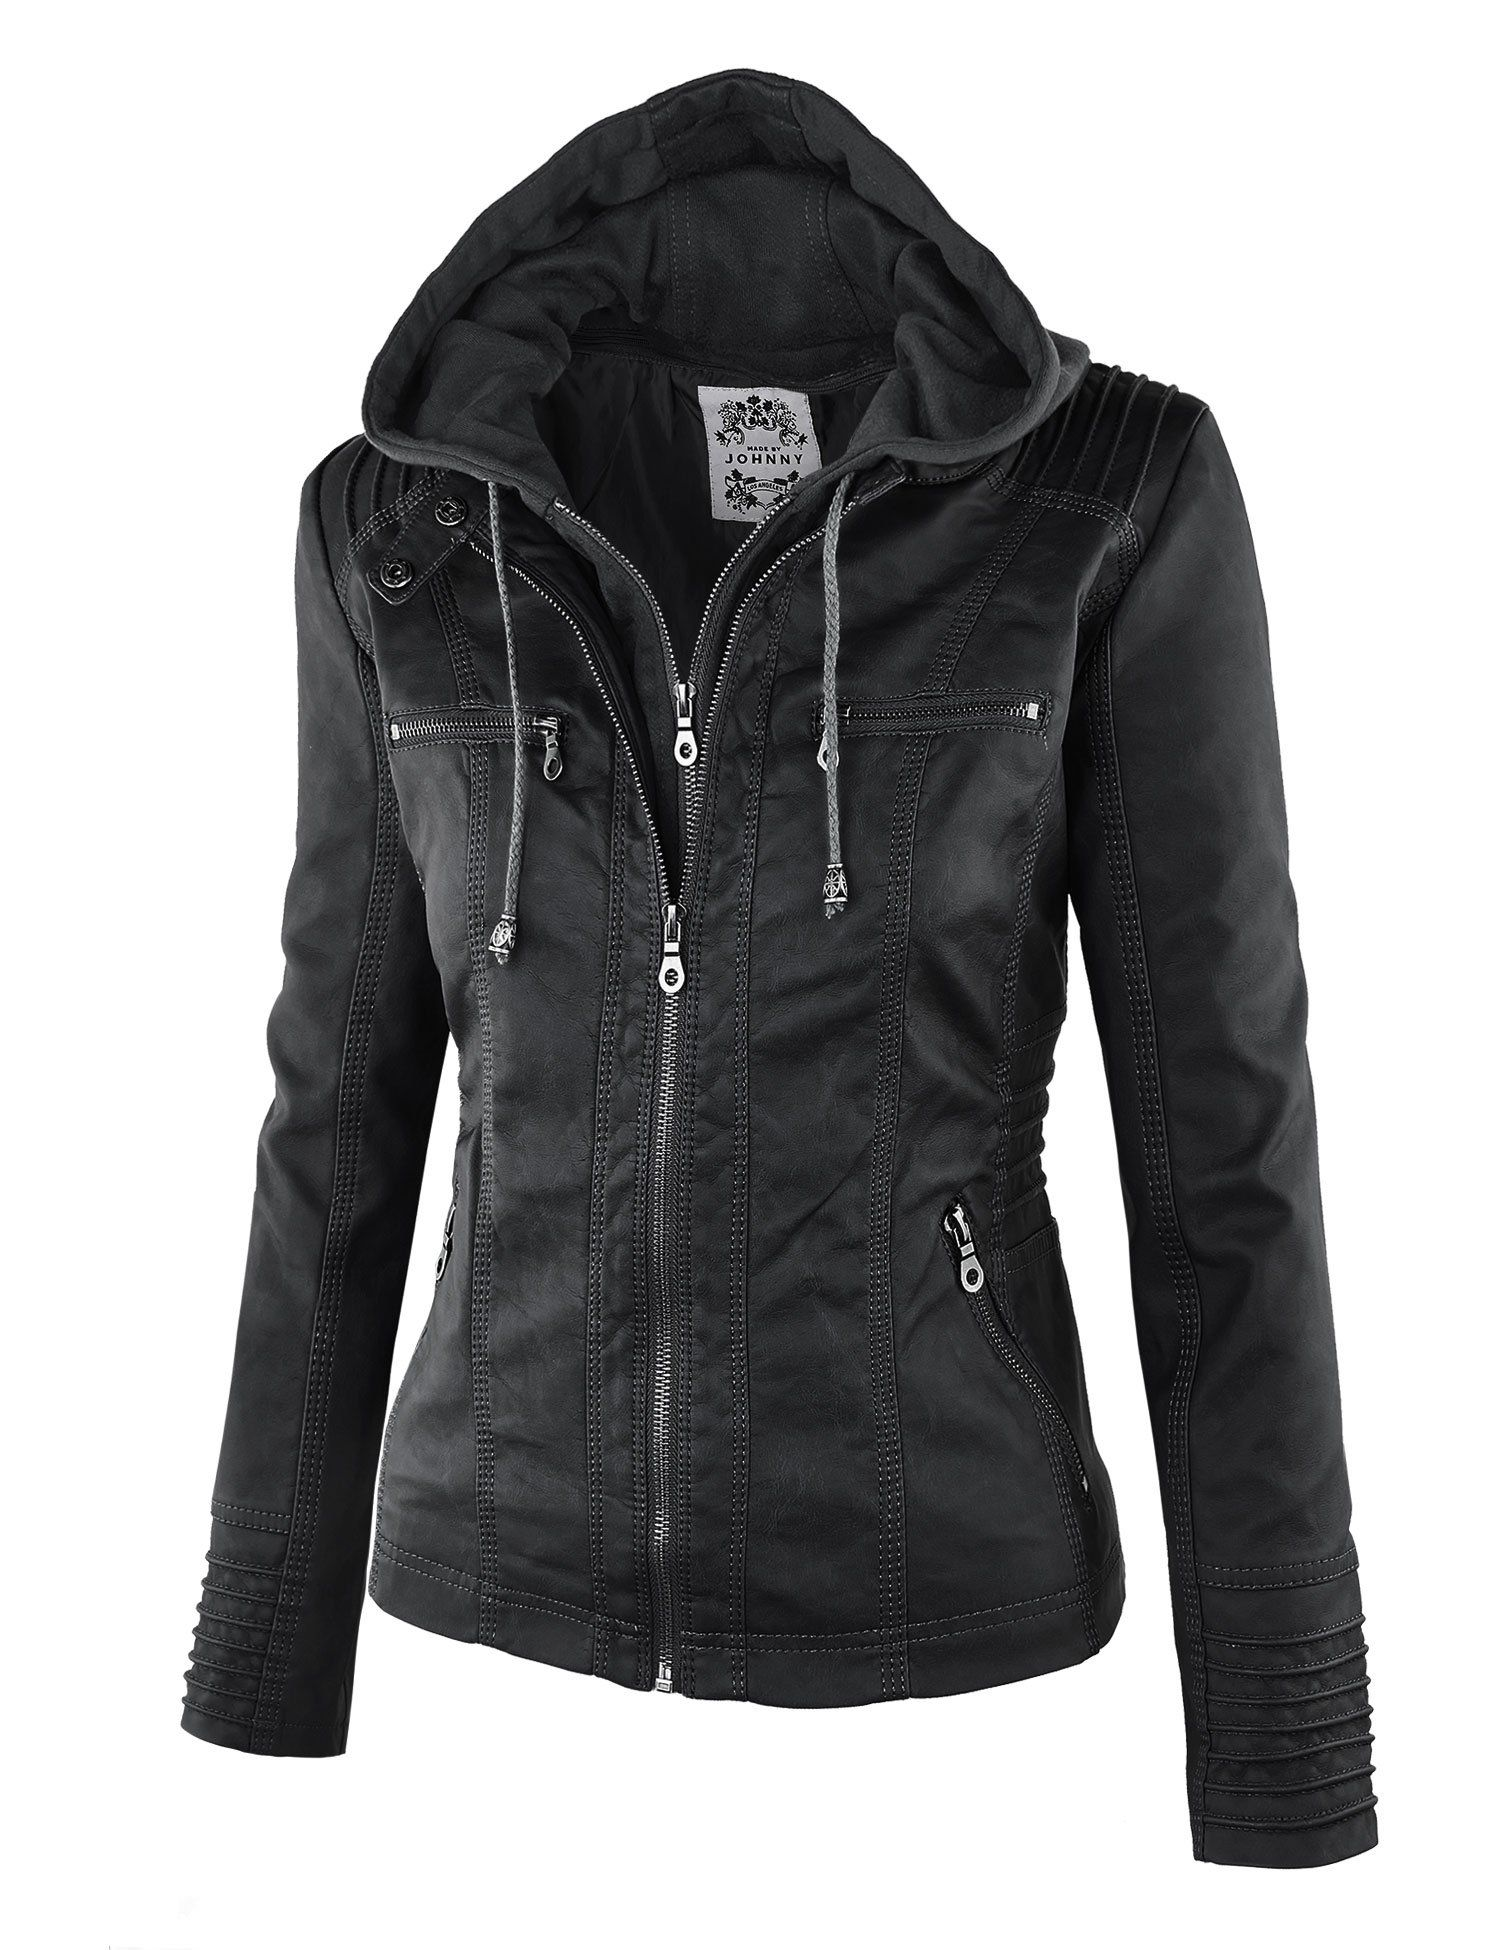 Leather jacket damage - Ll Womens 2 For One Hooded Faux Leather Jacket At Amazon Women S Coats Shop